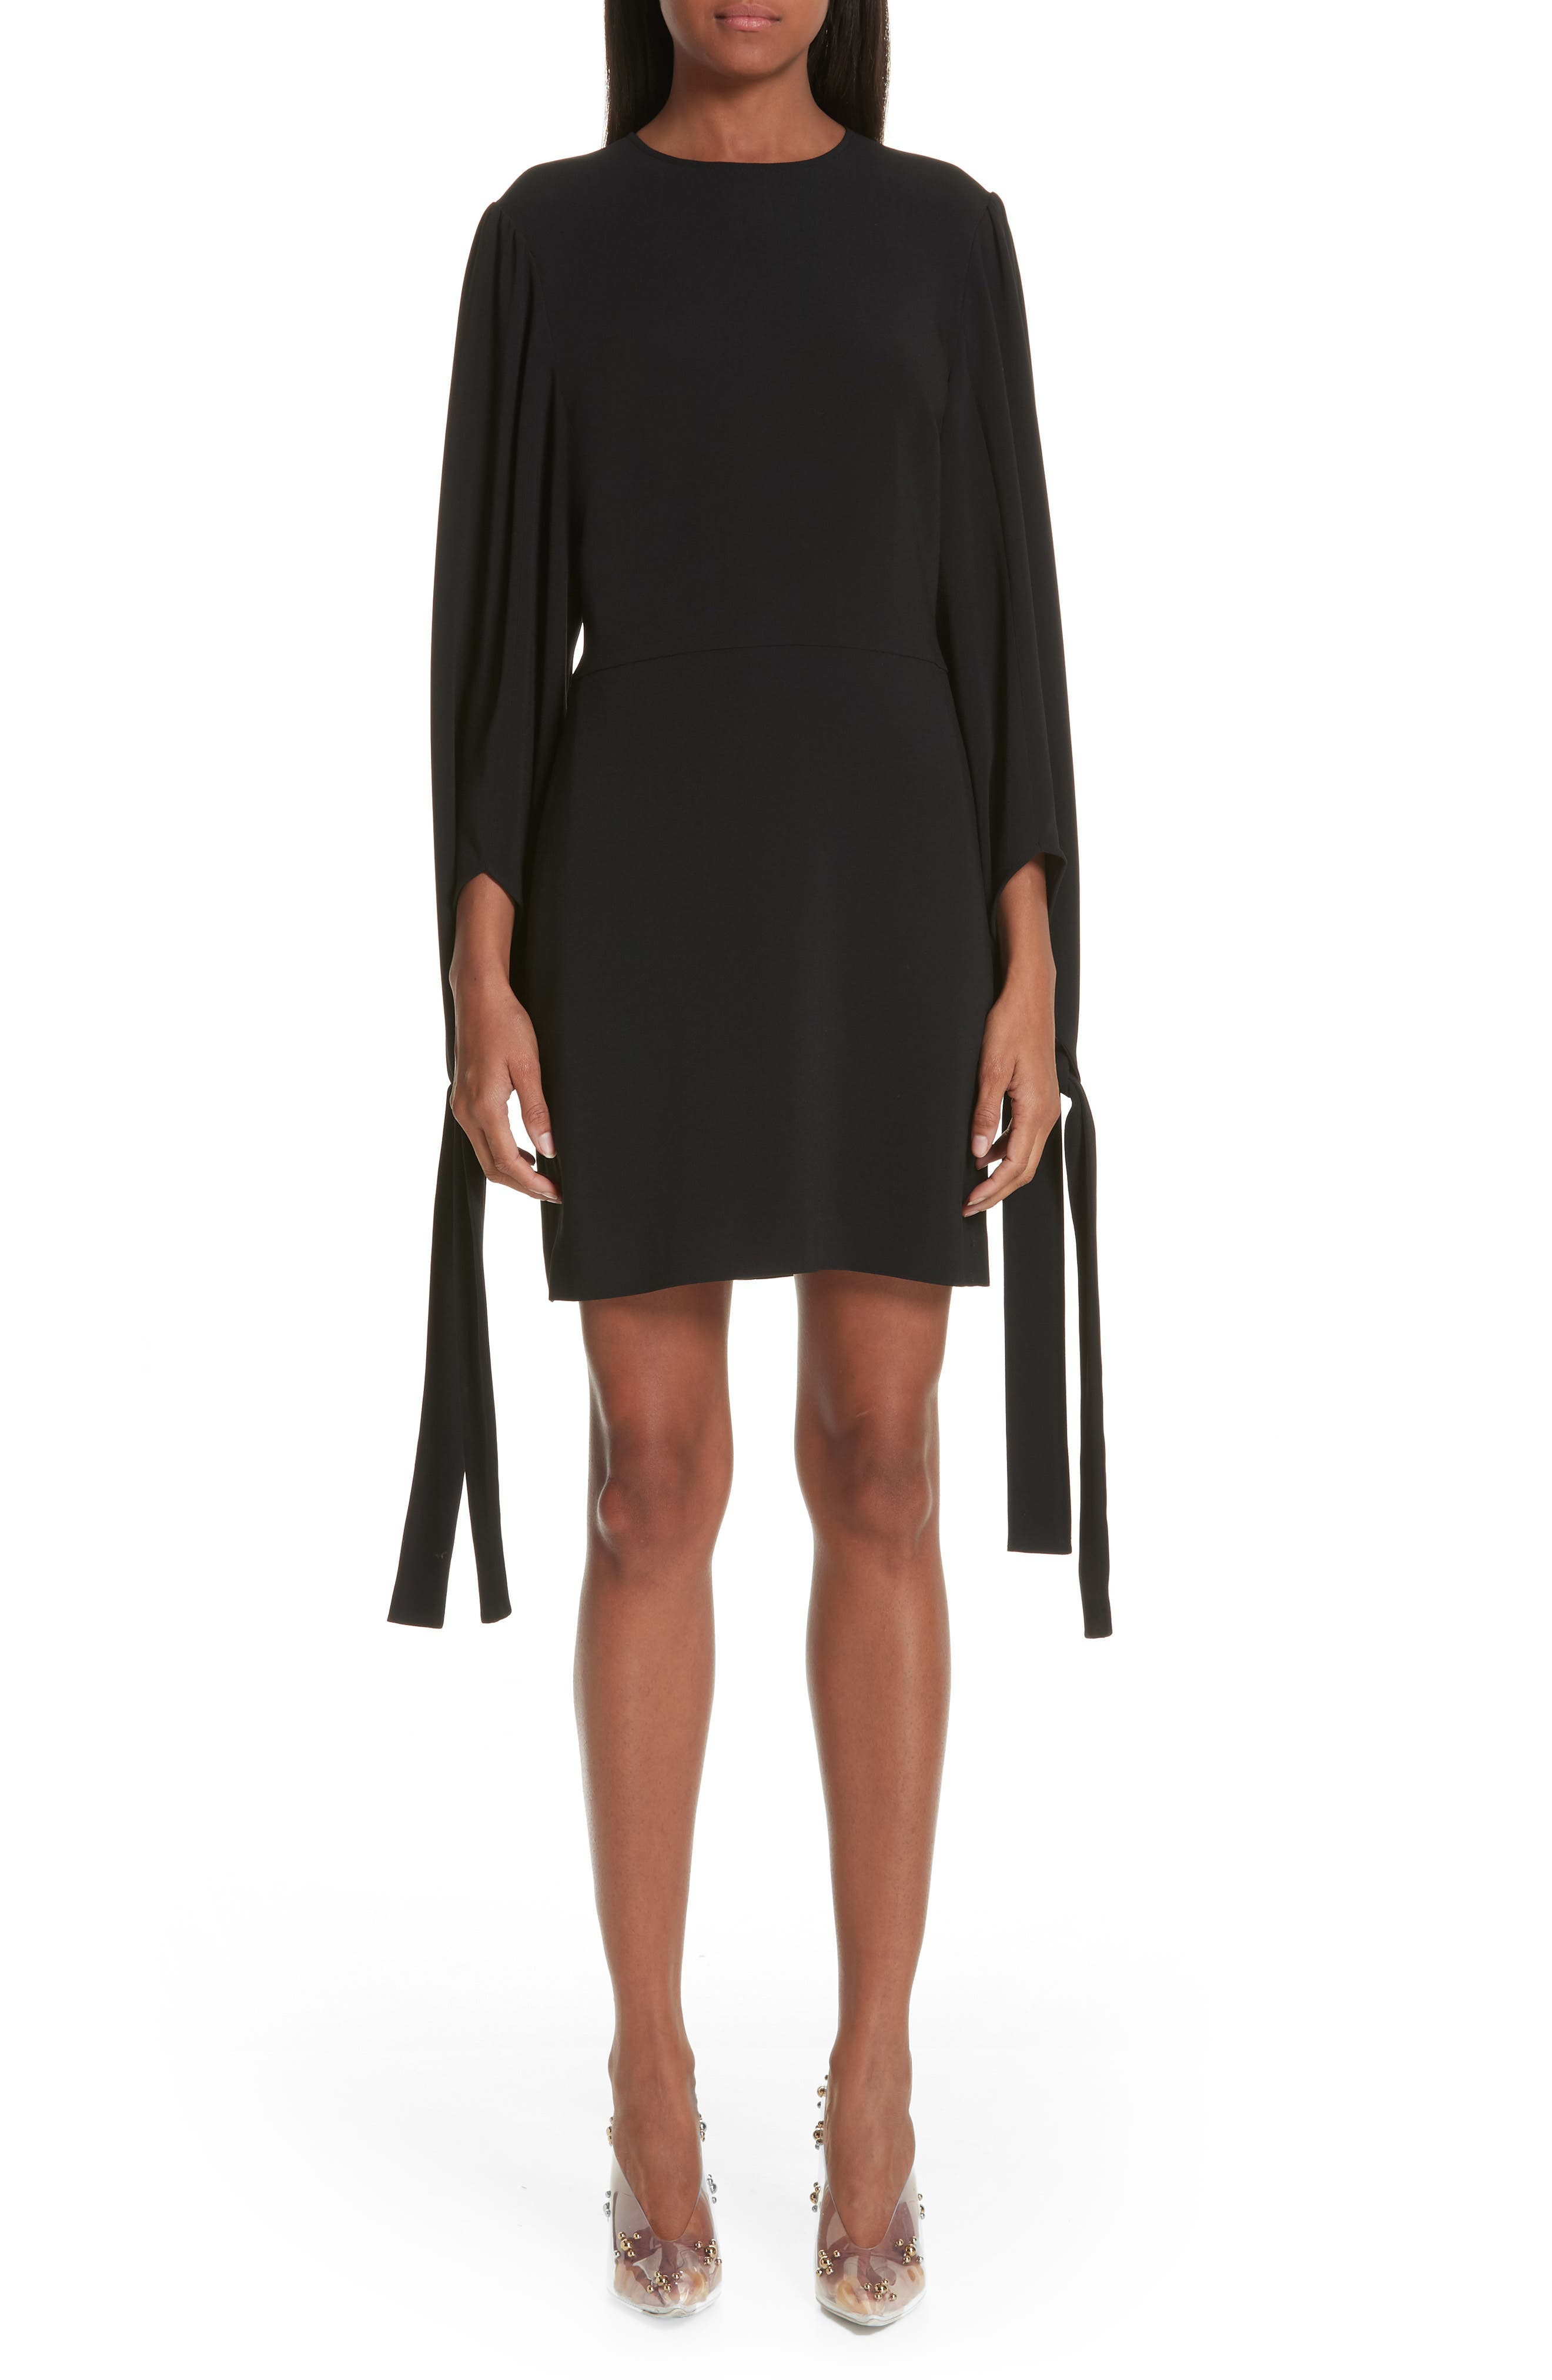 Stella Mccartney Tie Cuff Stretch Cady Dress, US / 50 IT - Black